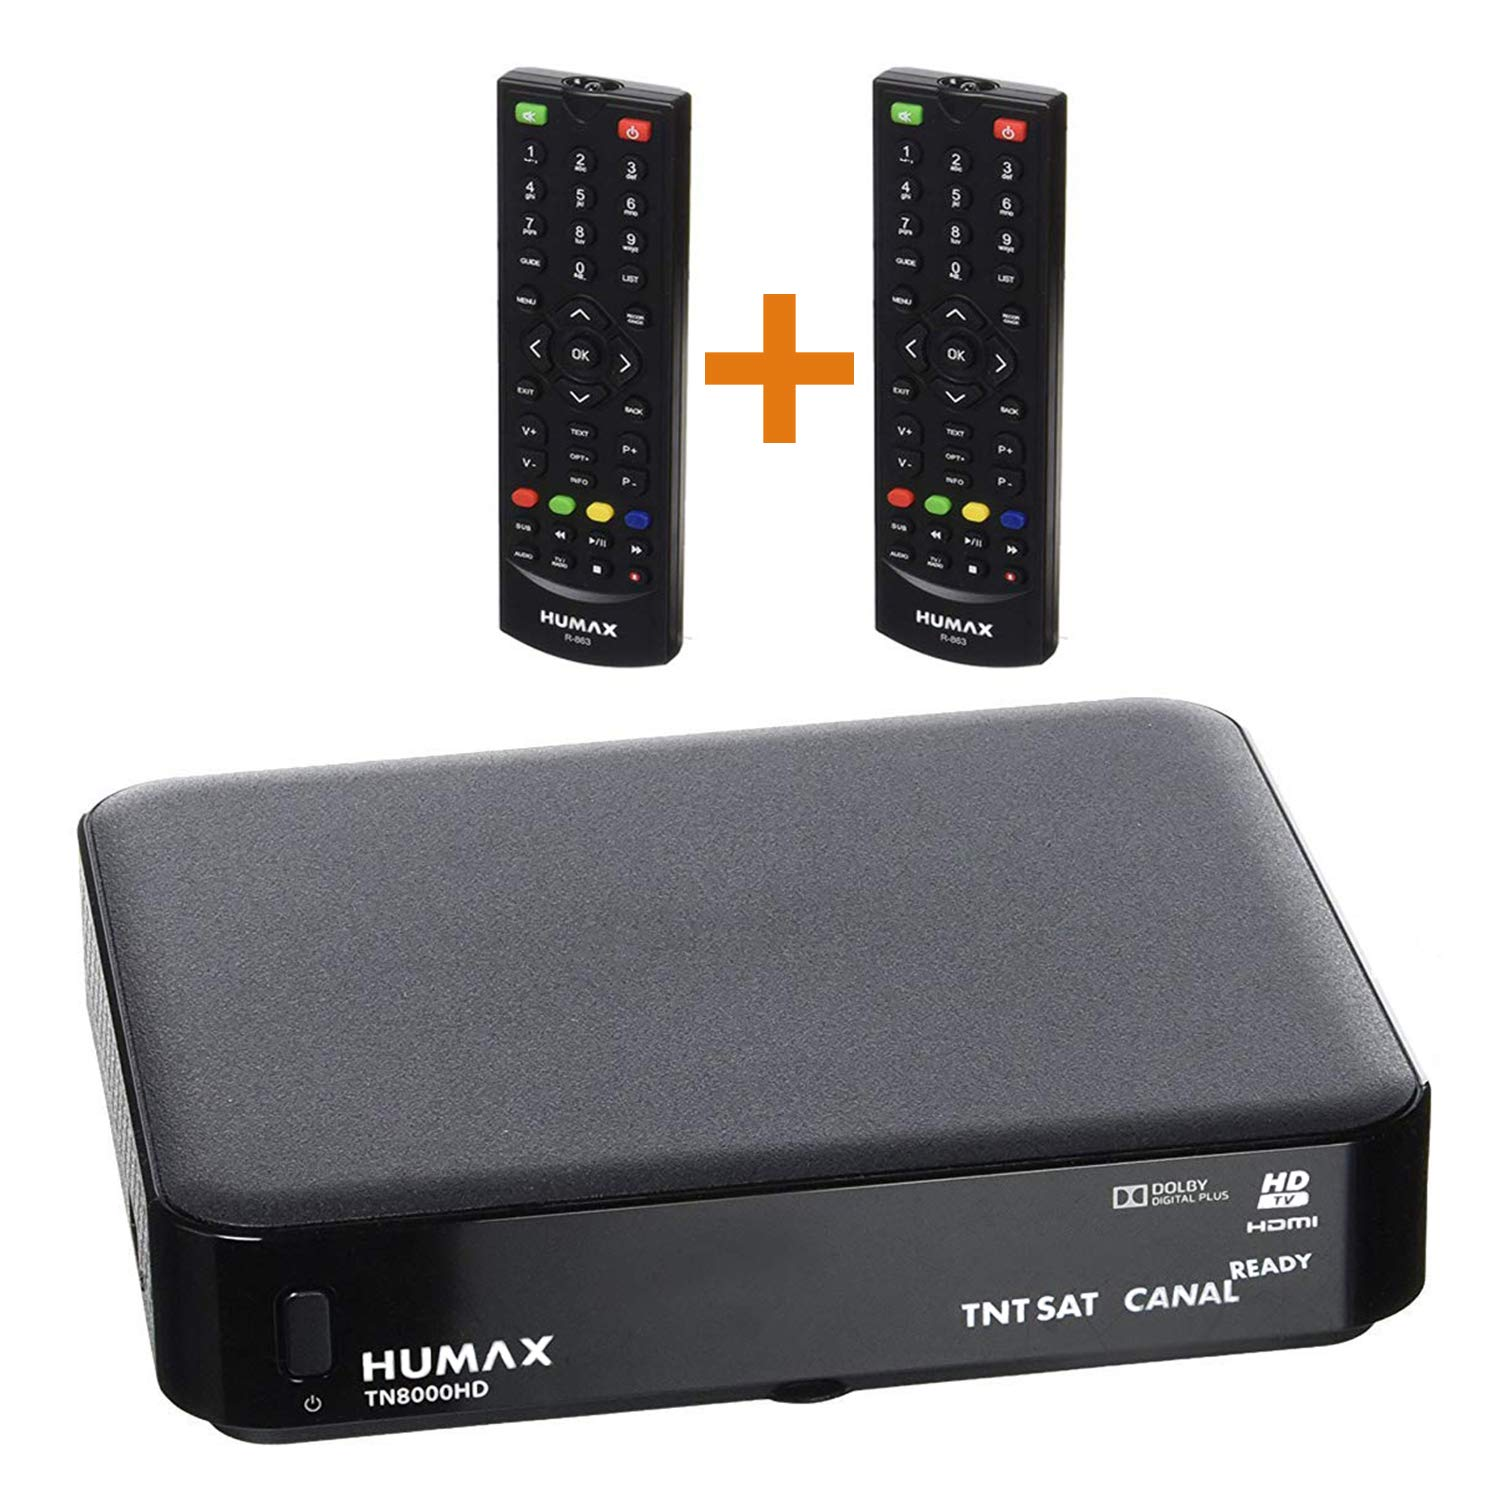 TNTSAT Satellite Receptor TNT decodificador - Humax tn8000hd + ...